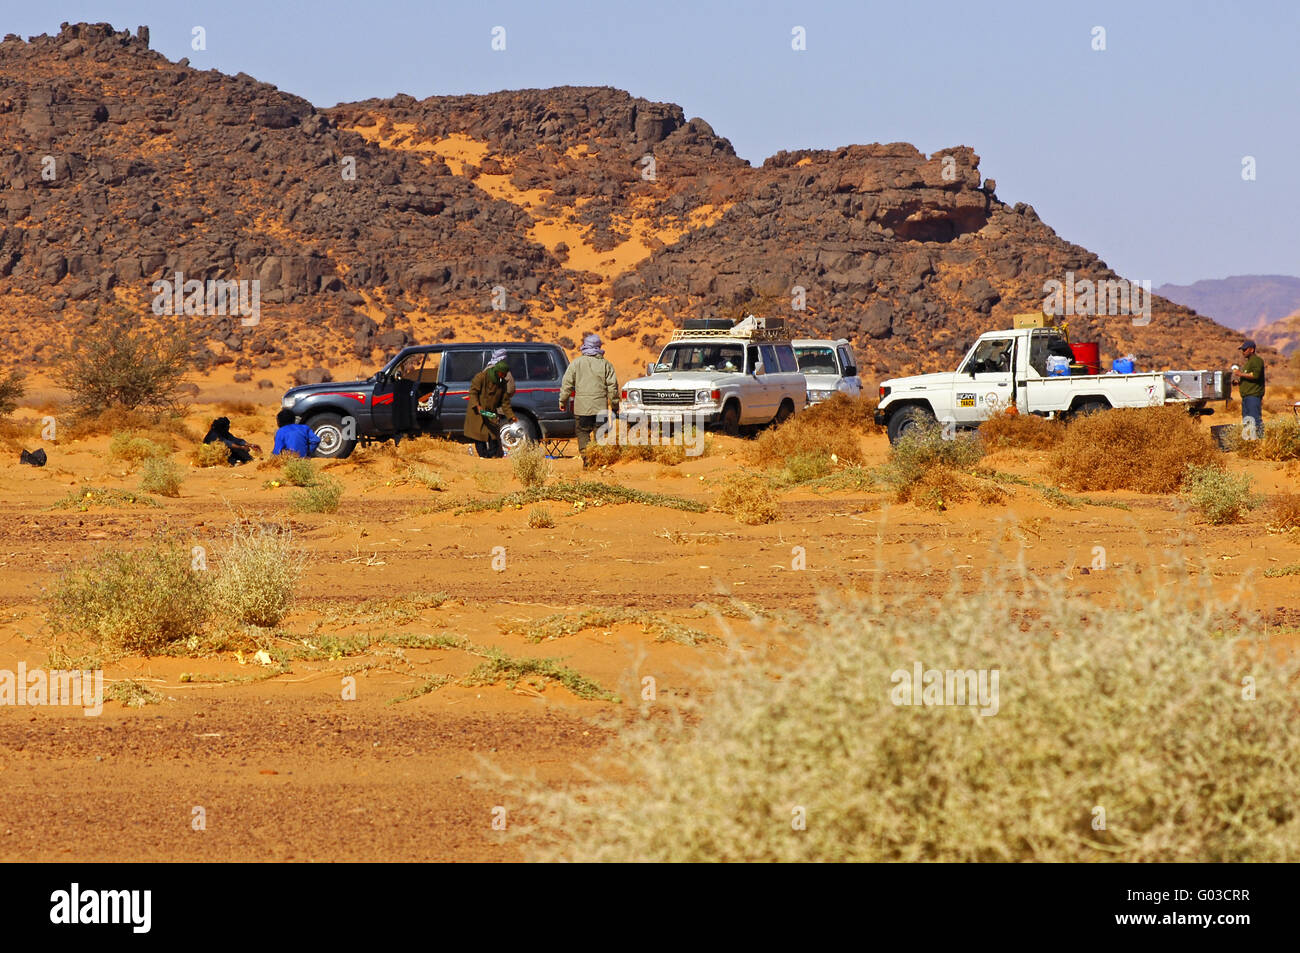 Off-road vehicles at a meeting point in the desert - Stock Image